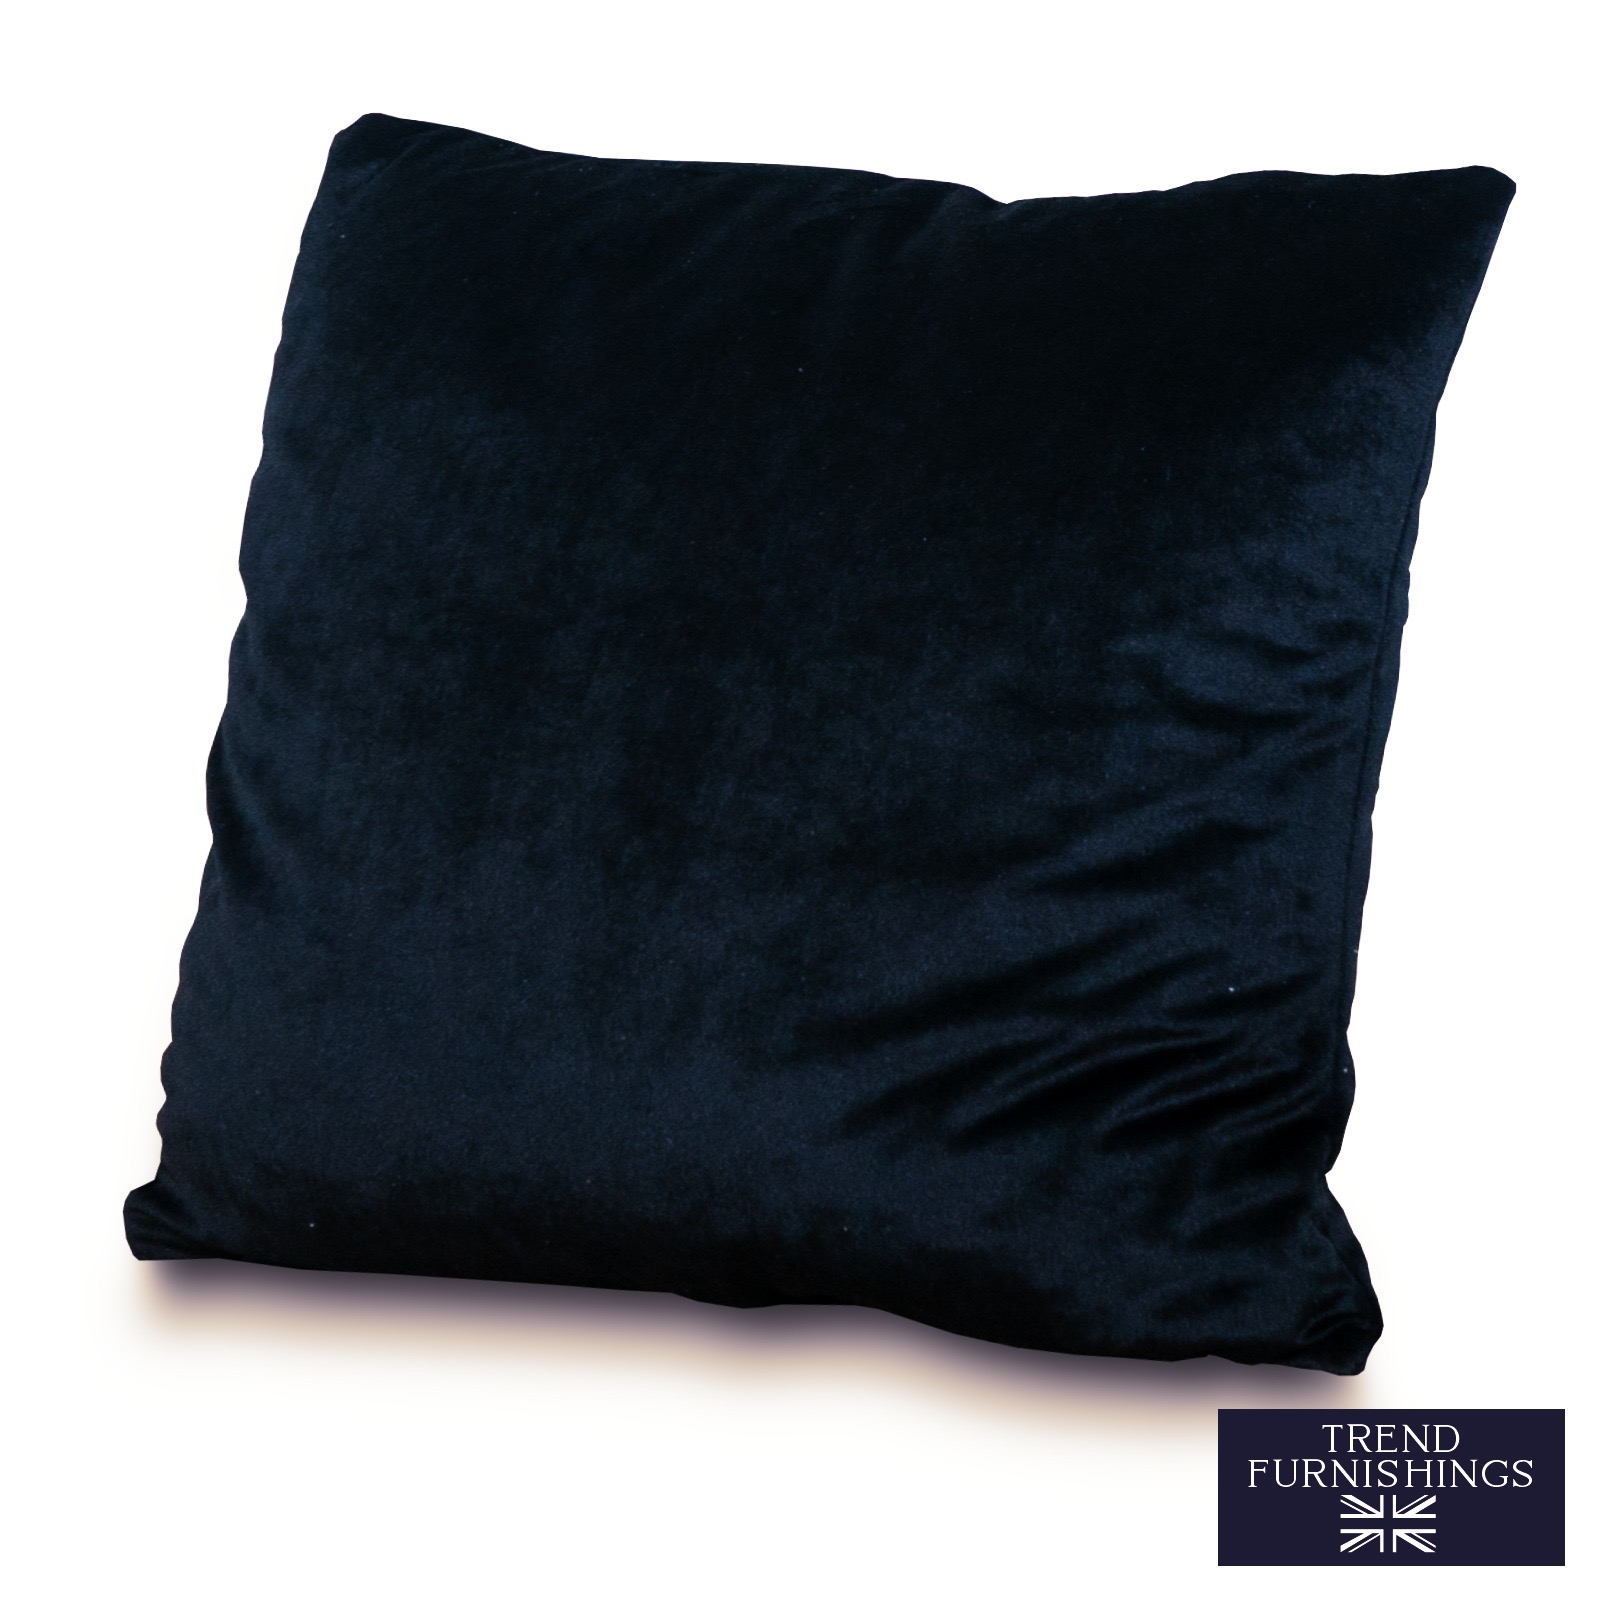 Velvet Soft Plush Cushion Covers 9 Colours Filled or Unfilled Handmade in the UK 2